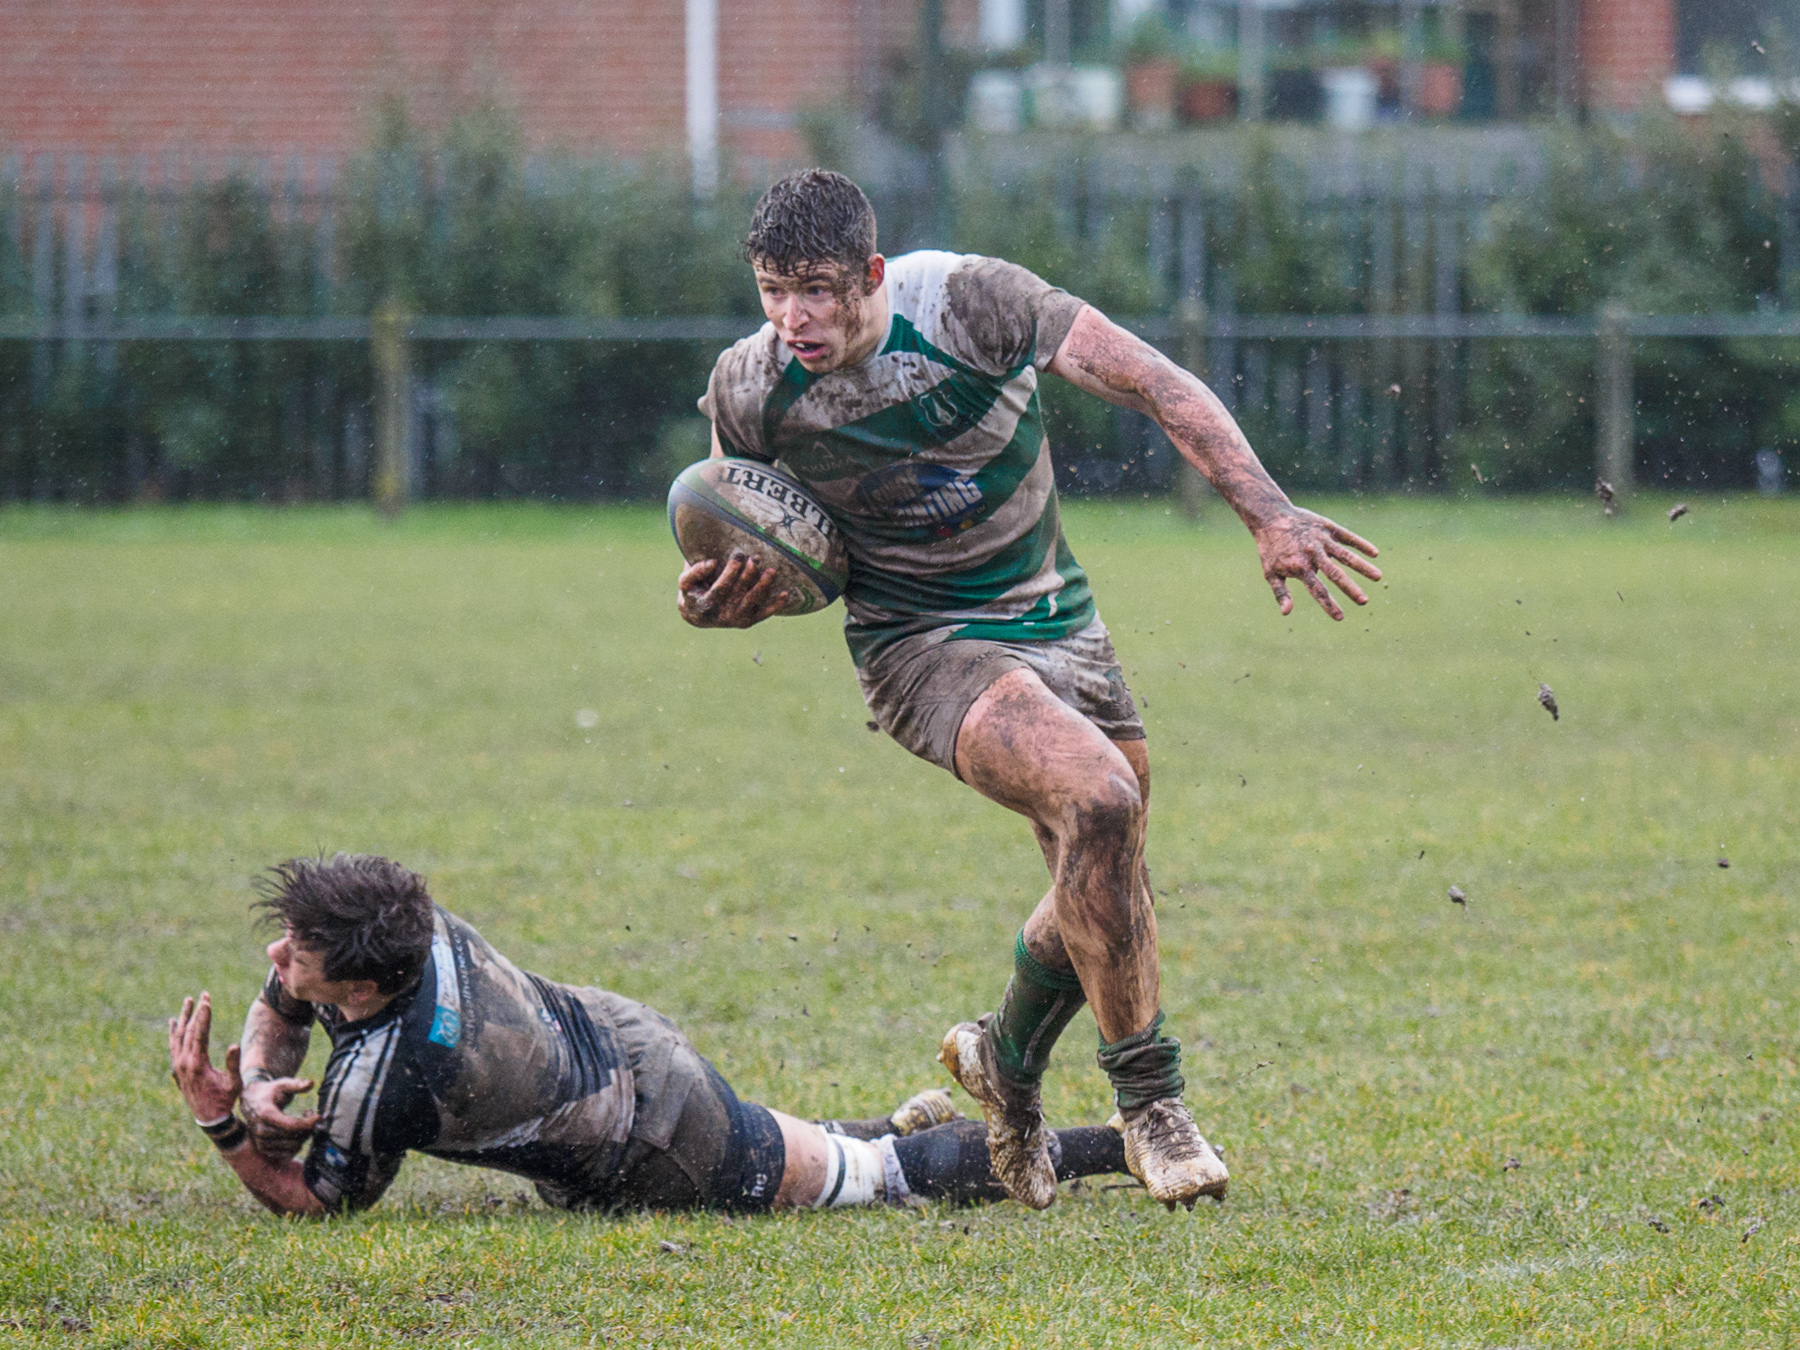 Try-scoring winger Dan Hammond leaves his tackler cutching at thin air